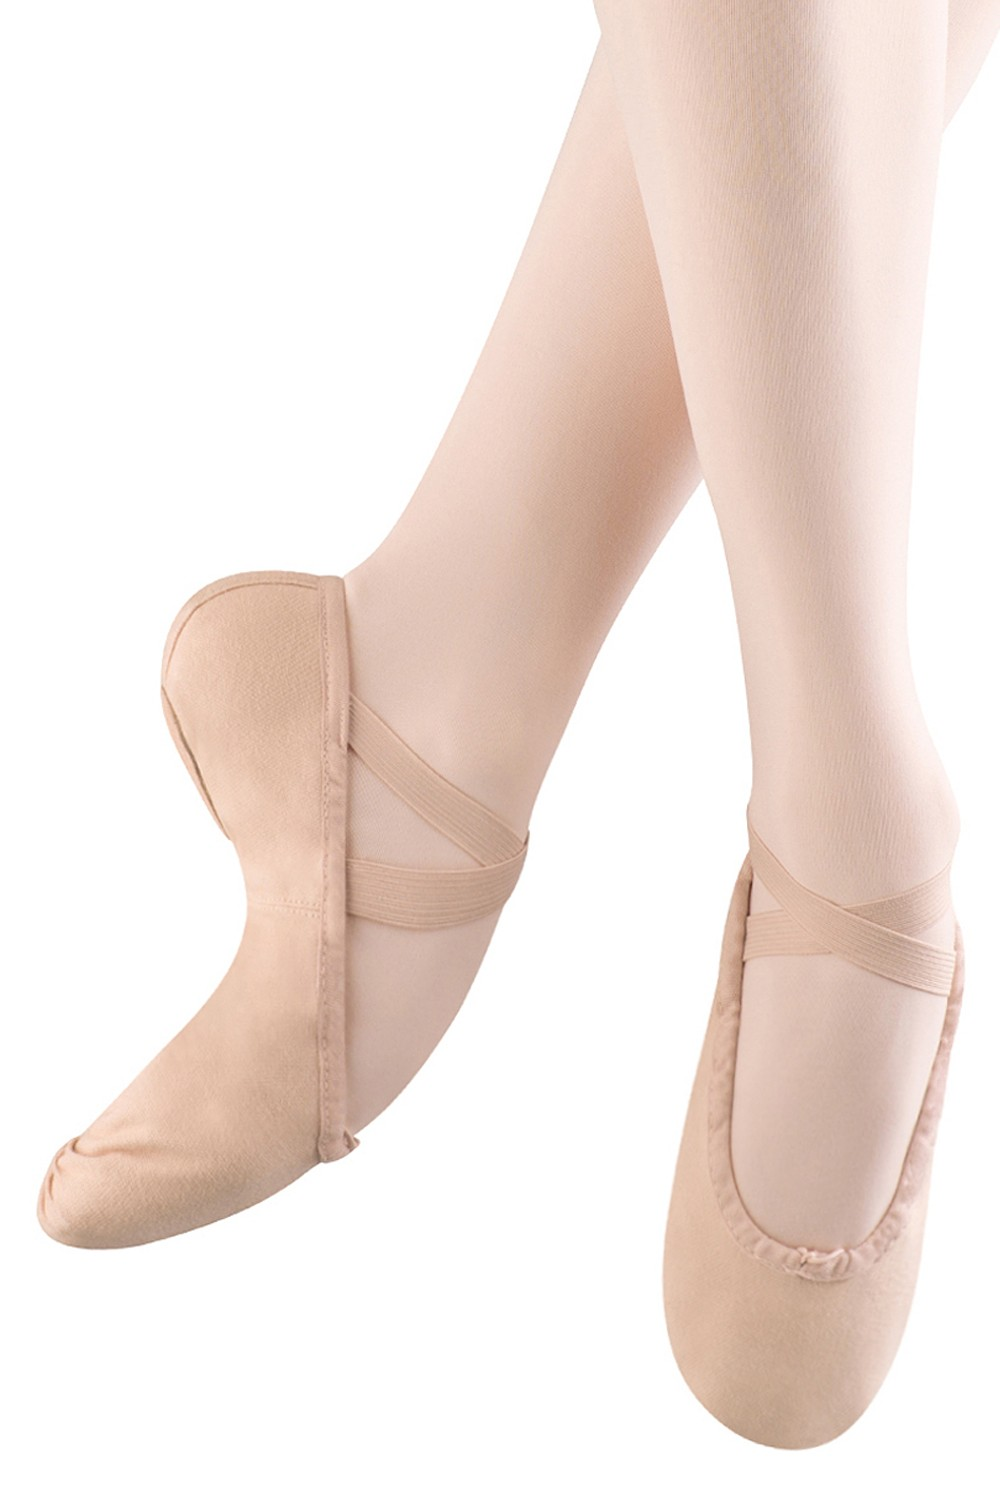 Find great deals on eBay for ballerina shoes. Shop with confidence.